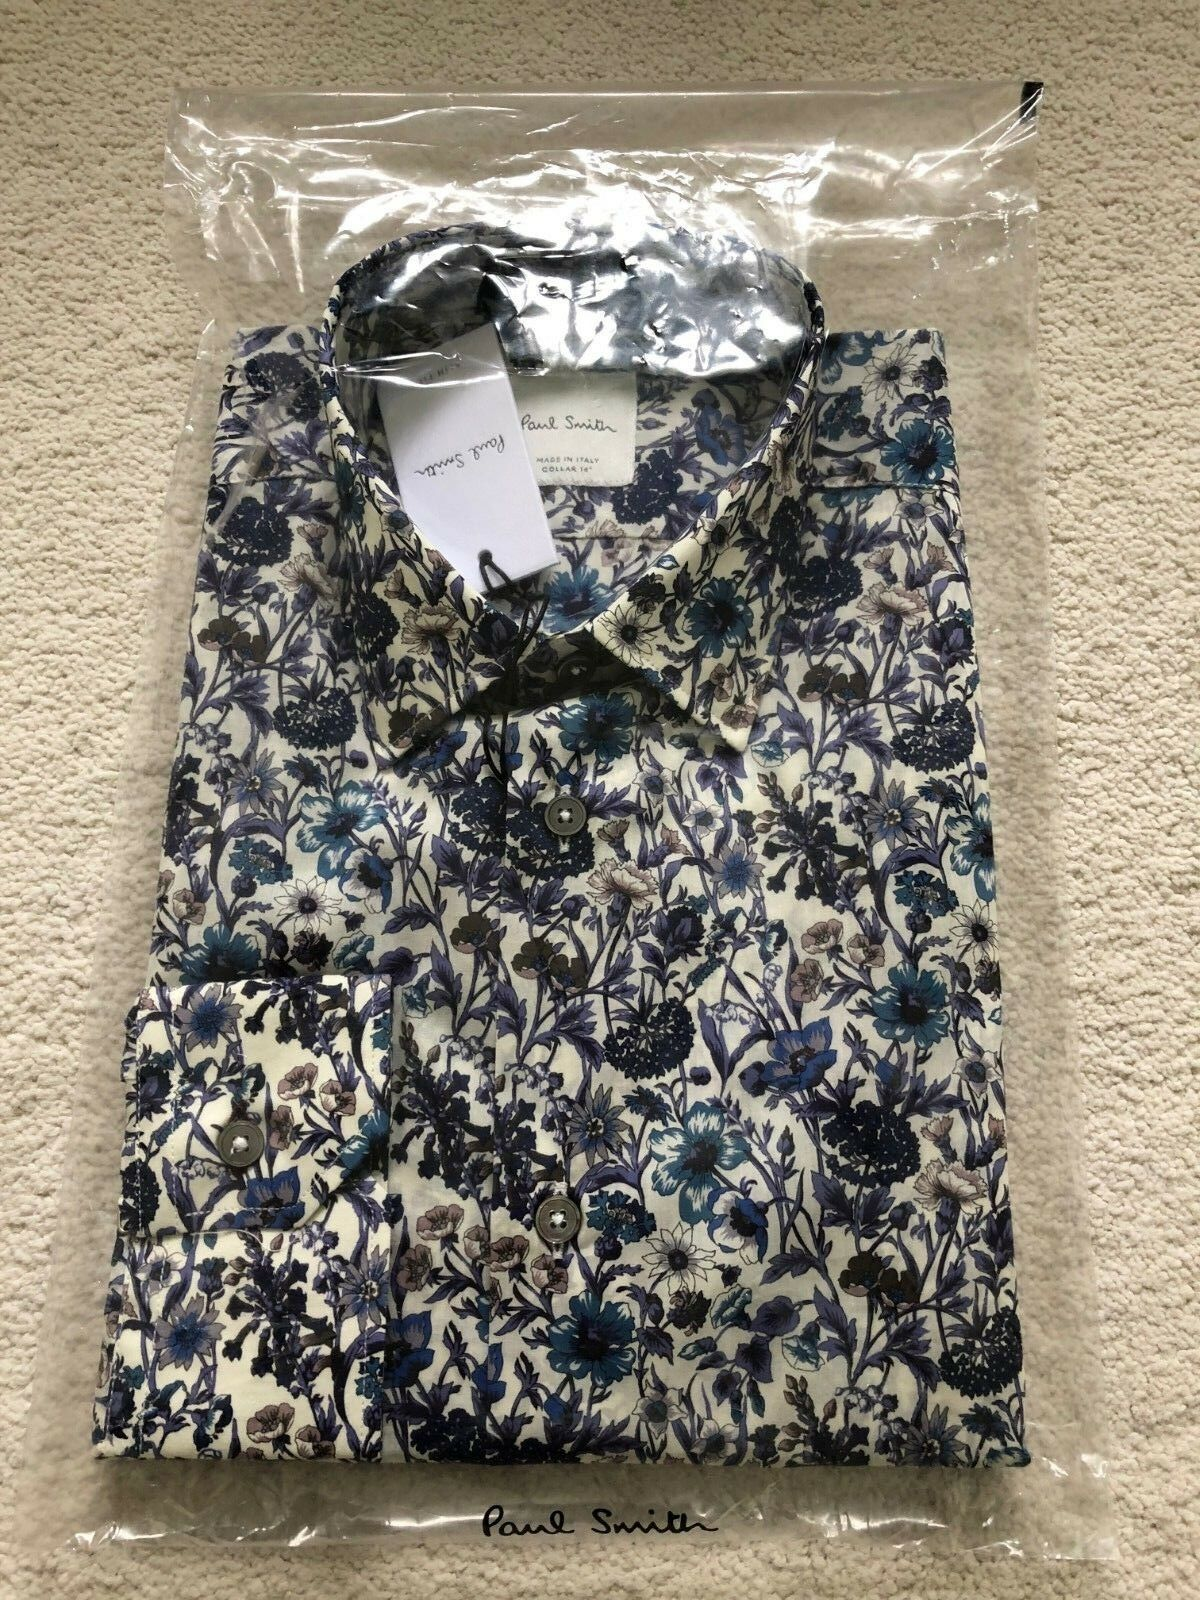 Paul Smith Long Sleeve Formal Slim fit Shirt  Floral design - RRP £185